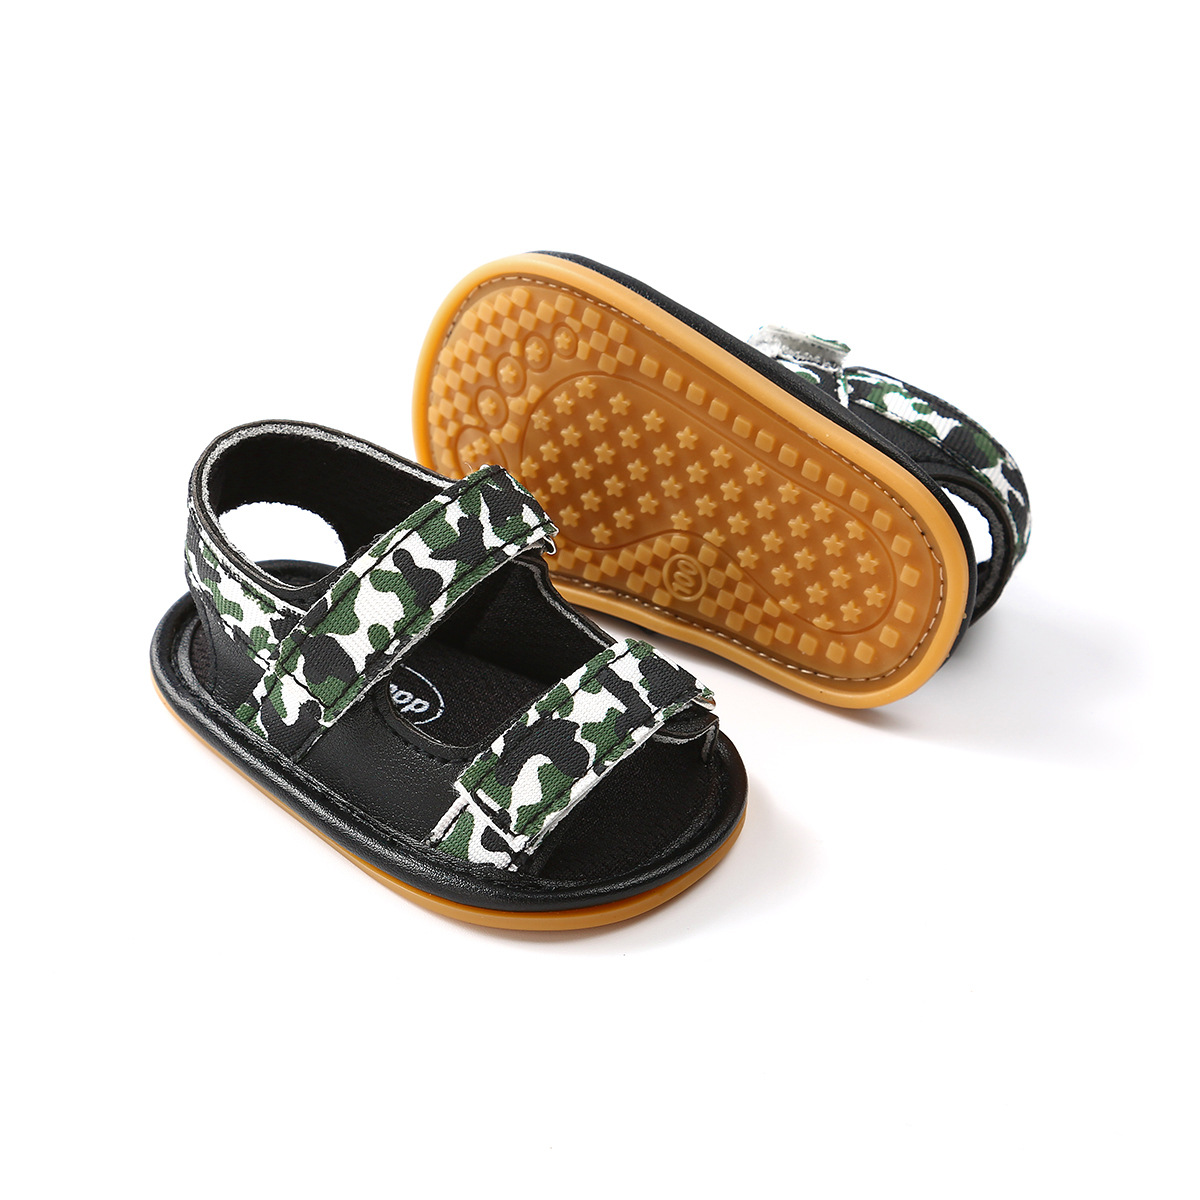 B&G Breathable Mesh Baby Sandals Summer Anti-slip Cotton Toddler Sandals Baby Shoes First Walkers